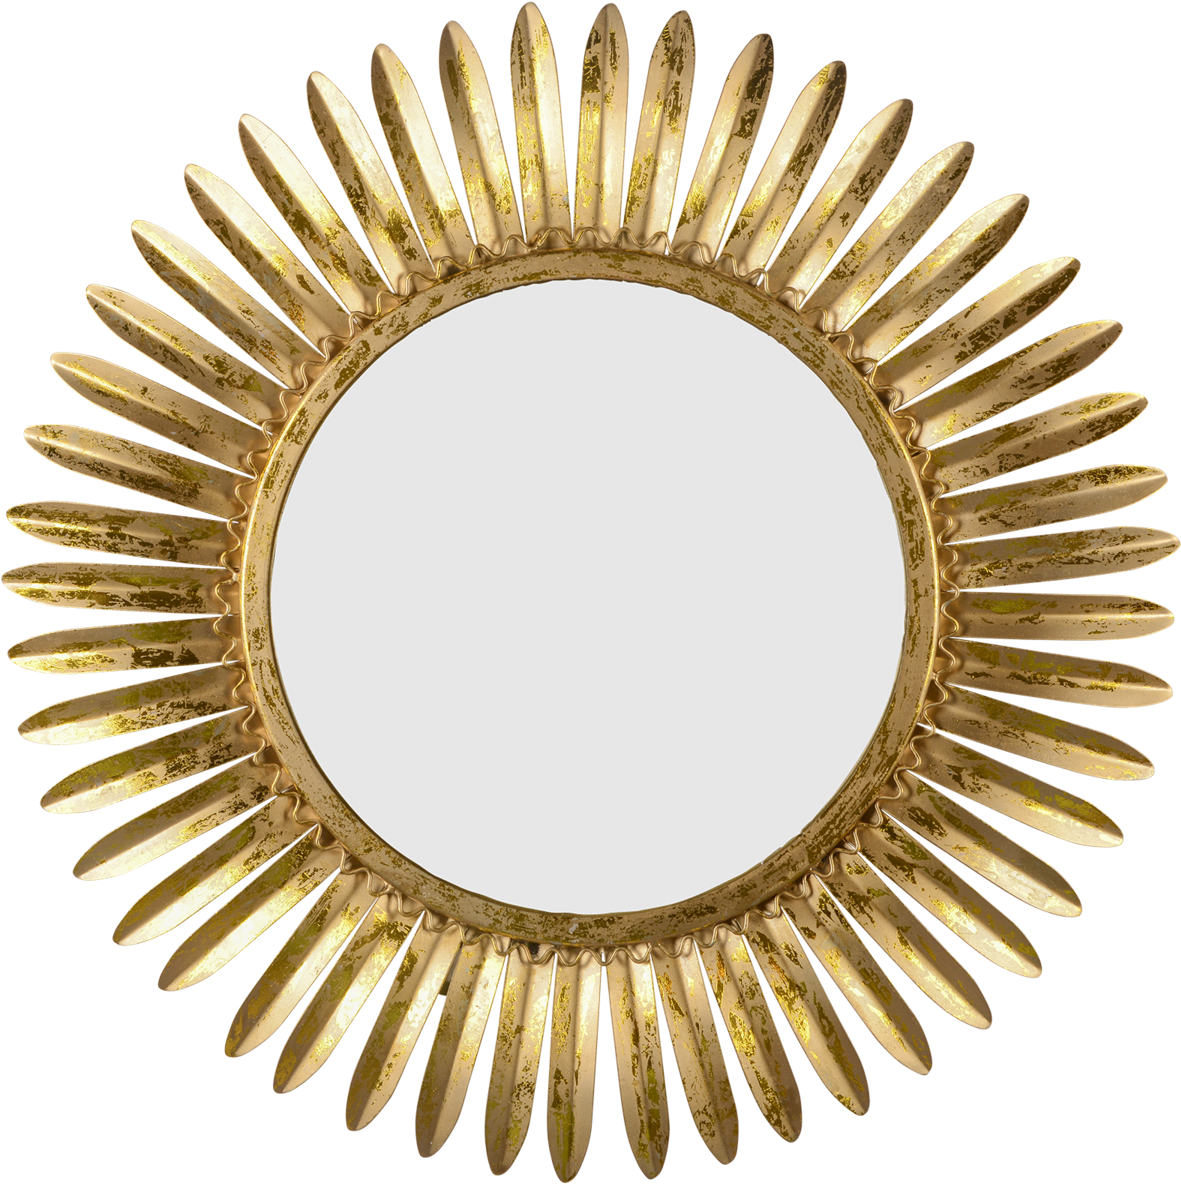 Mirror Rays Of Gold Shadow Vintage Rattan Hand Mirror Full Size Png Download Seekpng